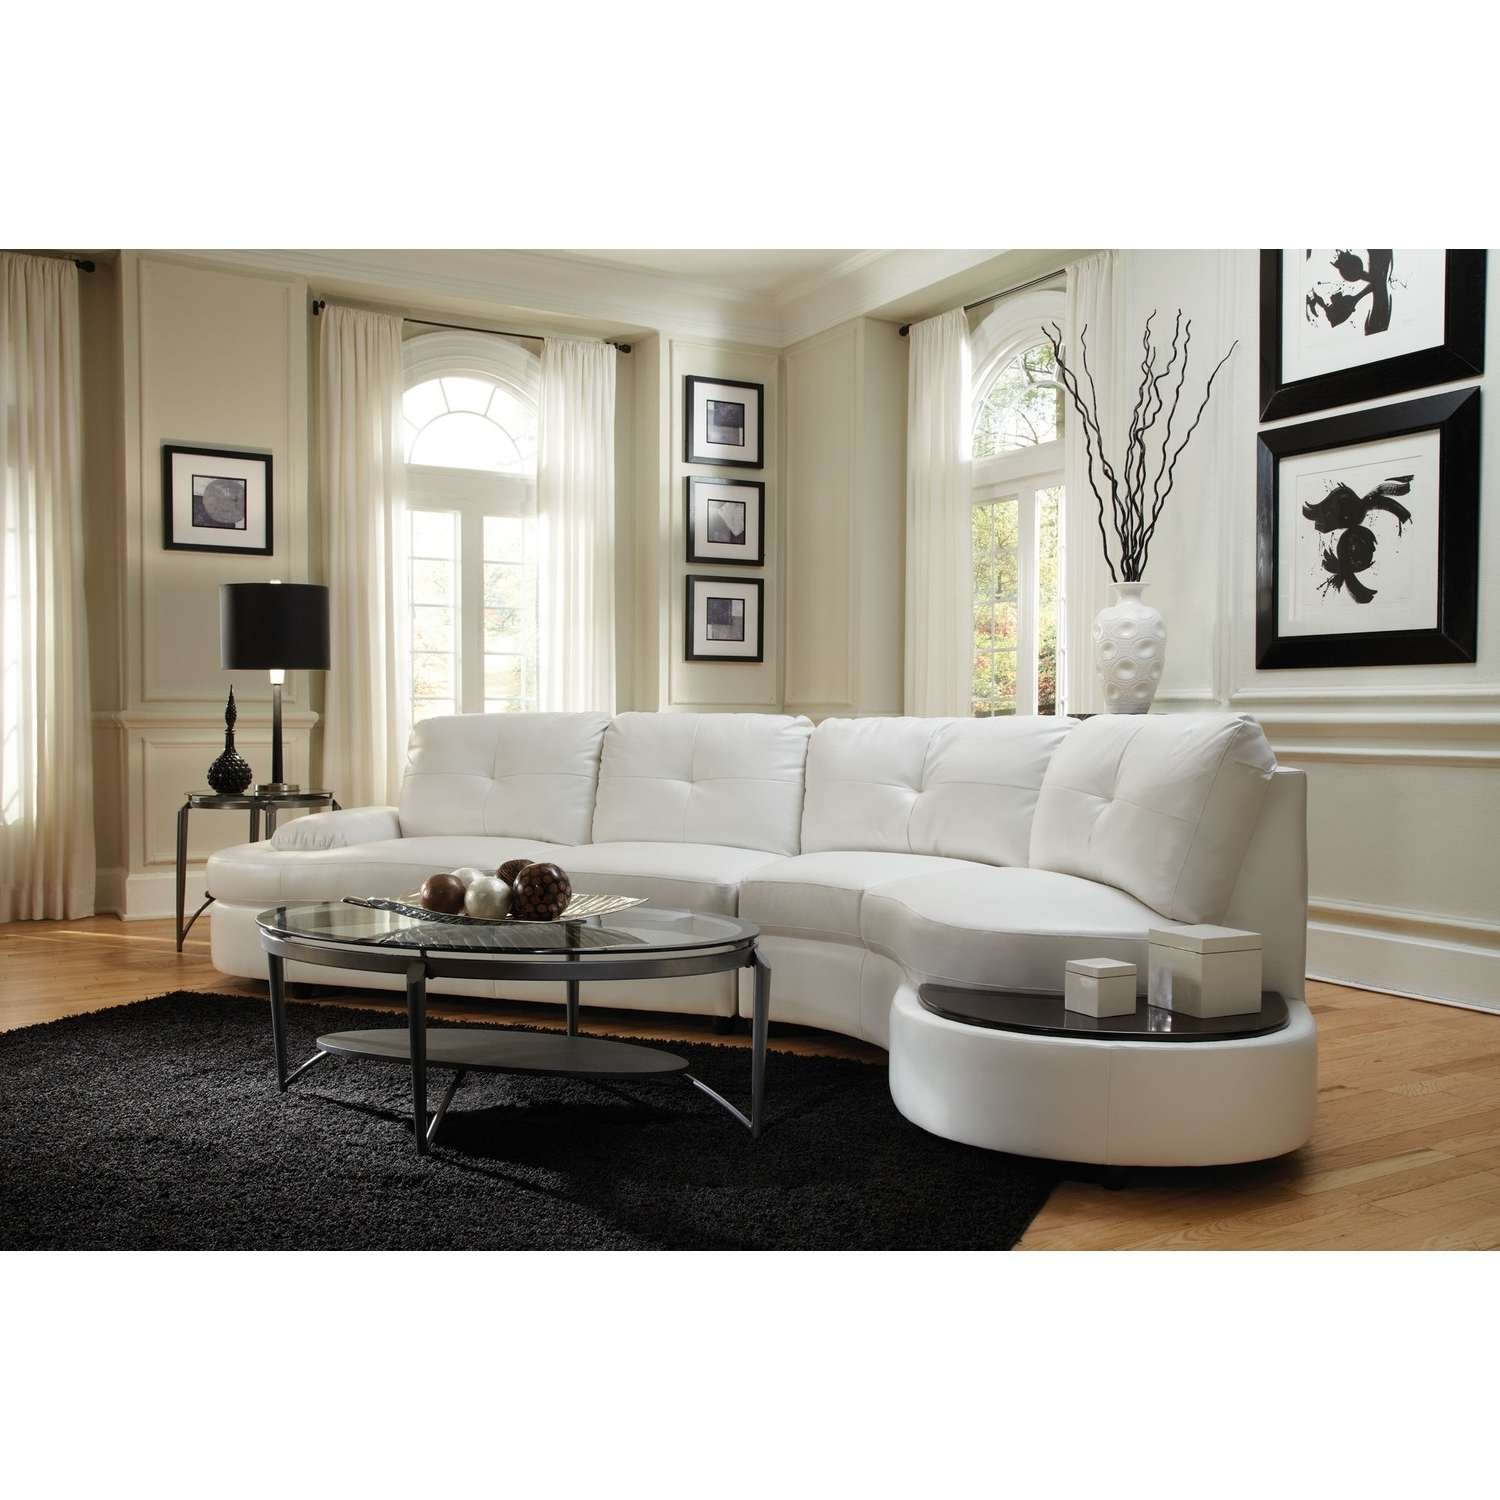 Recent Collection Sectional Sofas Rochester Ny – Mediasupload With Regard To Rochester Ny Sectional Sofas (View 5 of 15)